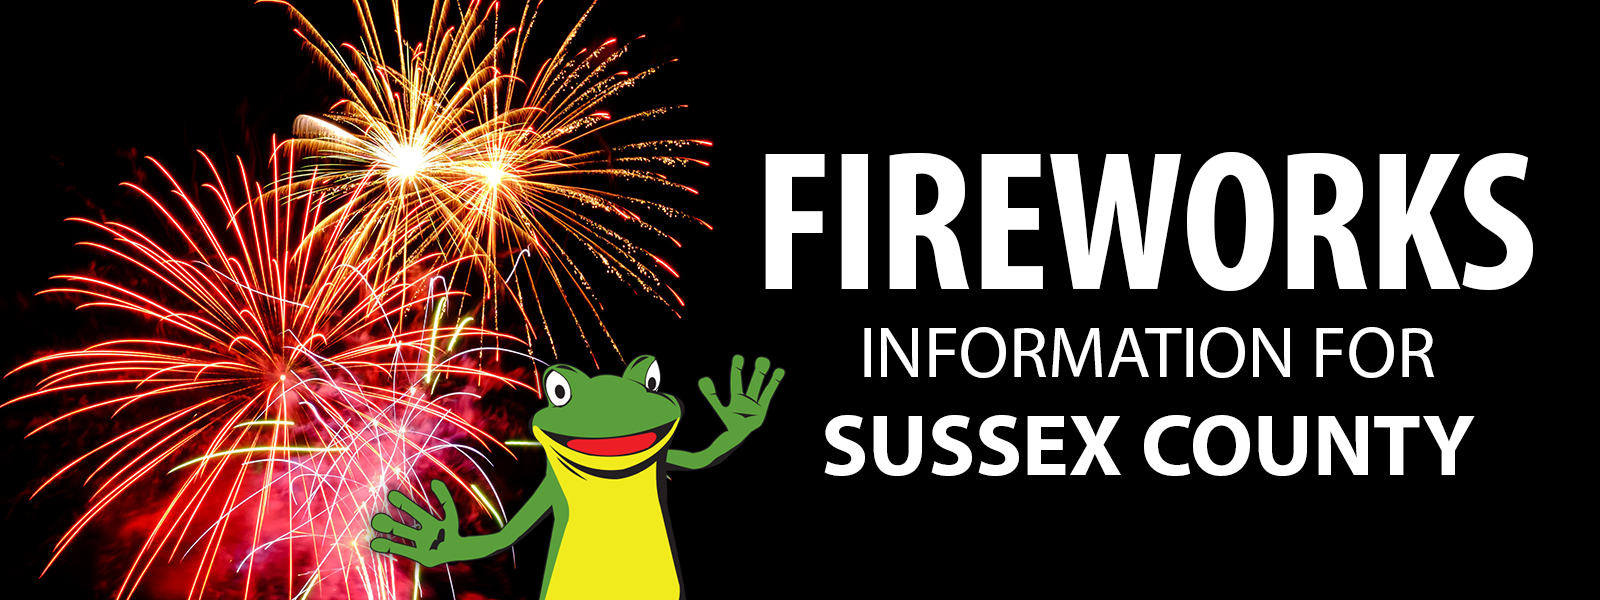 Fireworks Information for Sussex County - Header Image